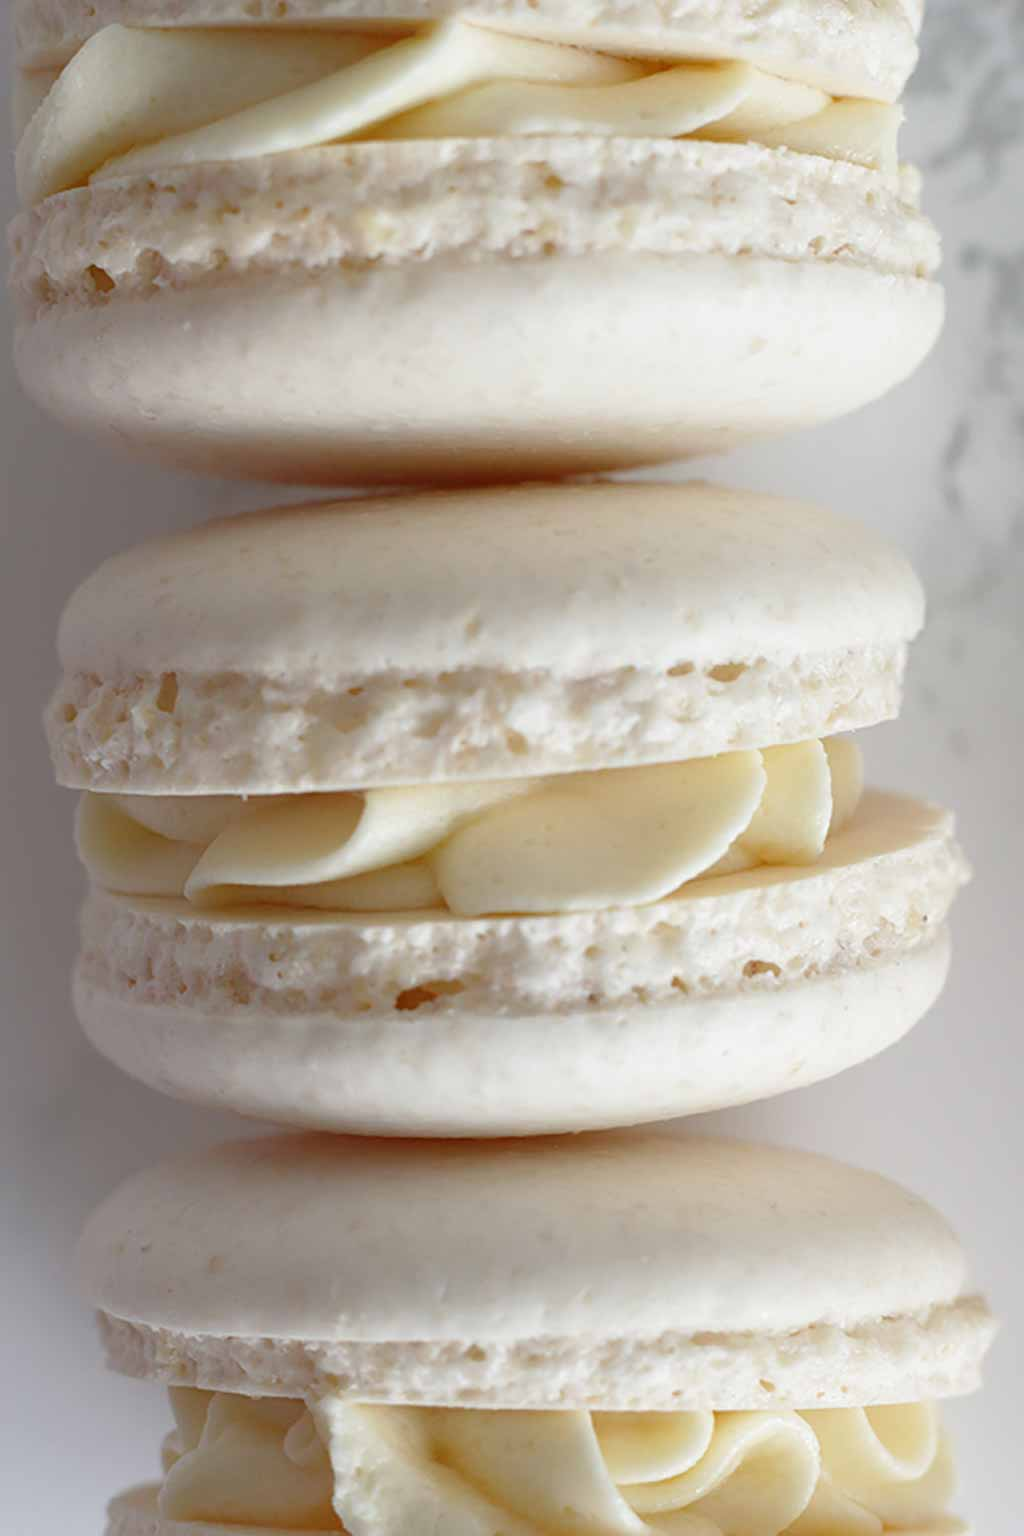 3 white Macarons on their side